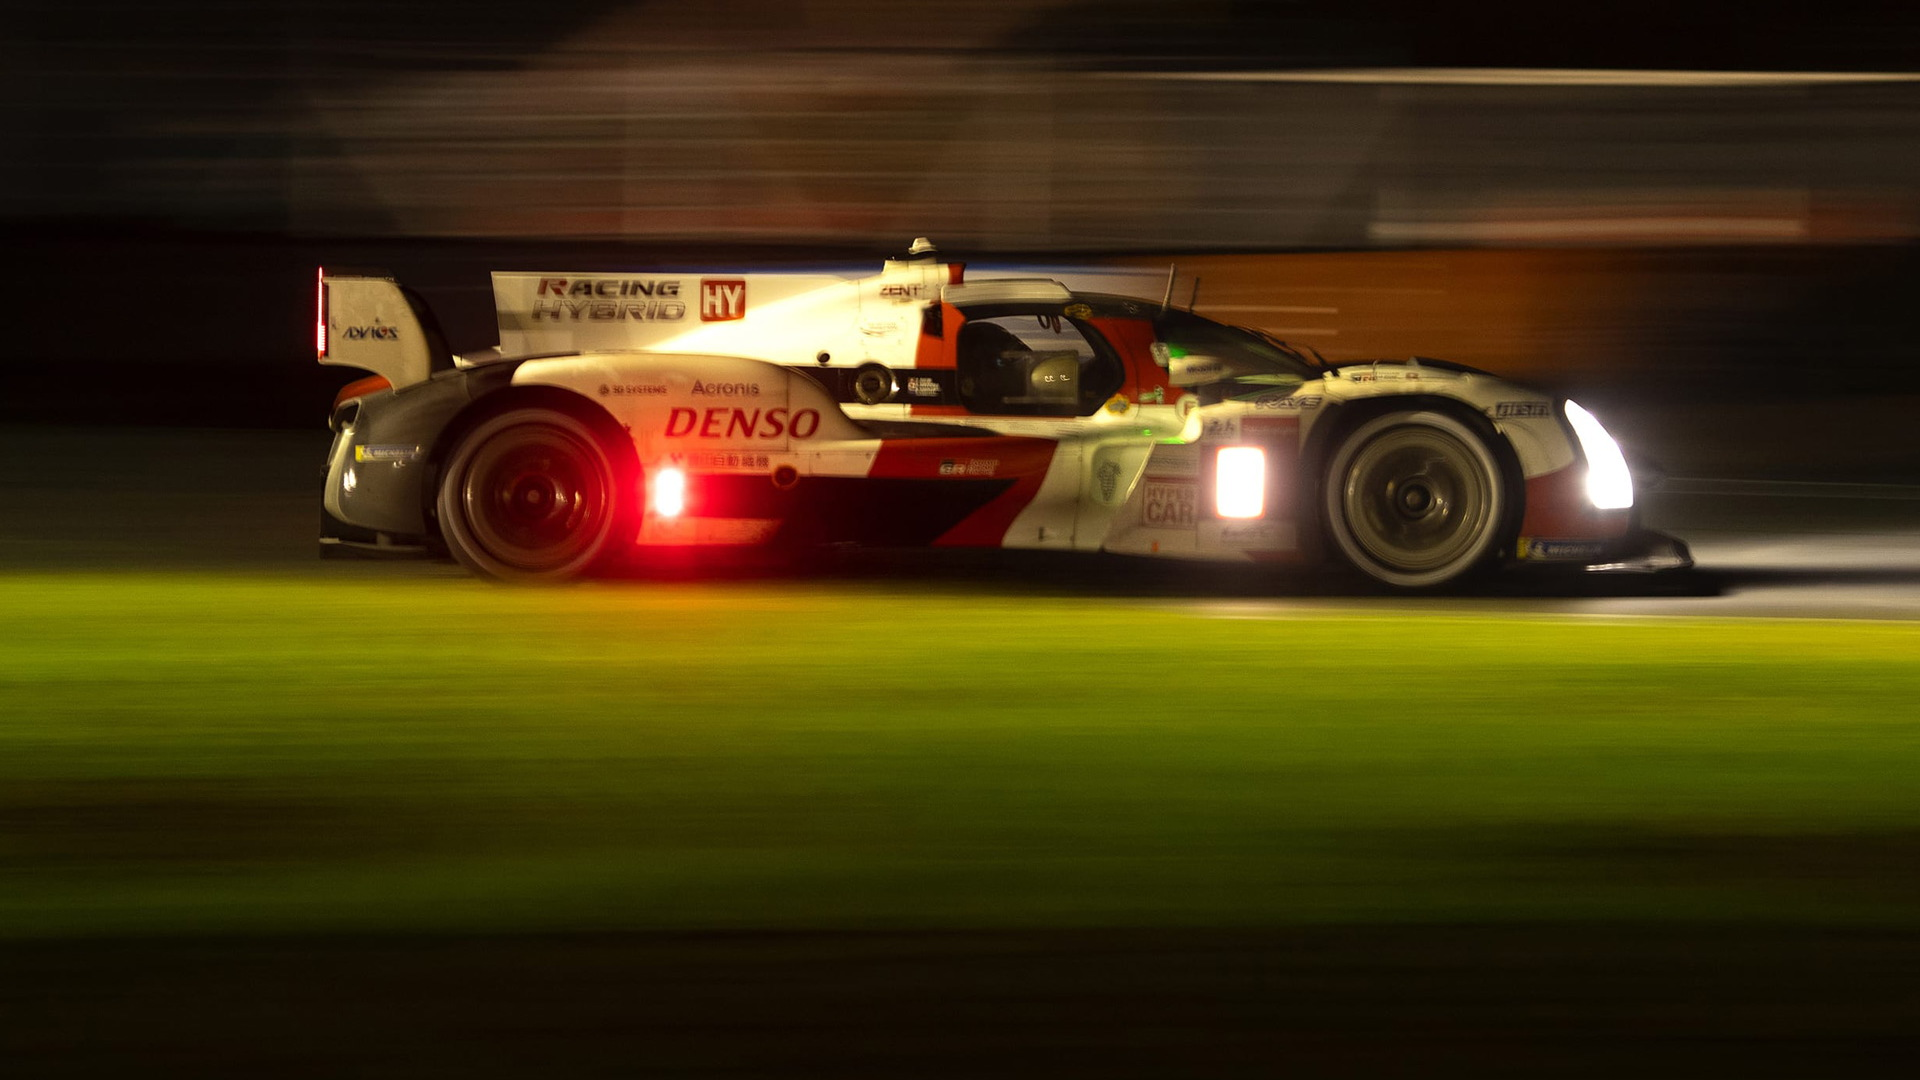 Toyota at the 2021 24 Hours of Le Mans